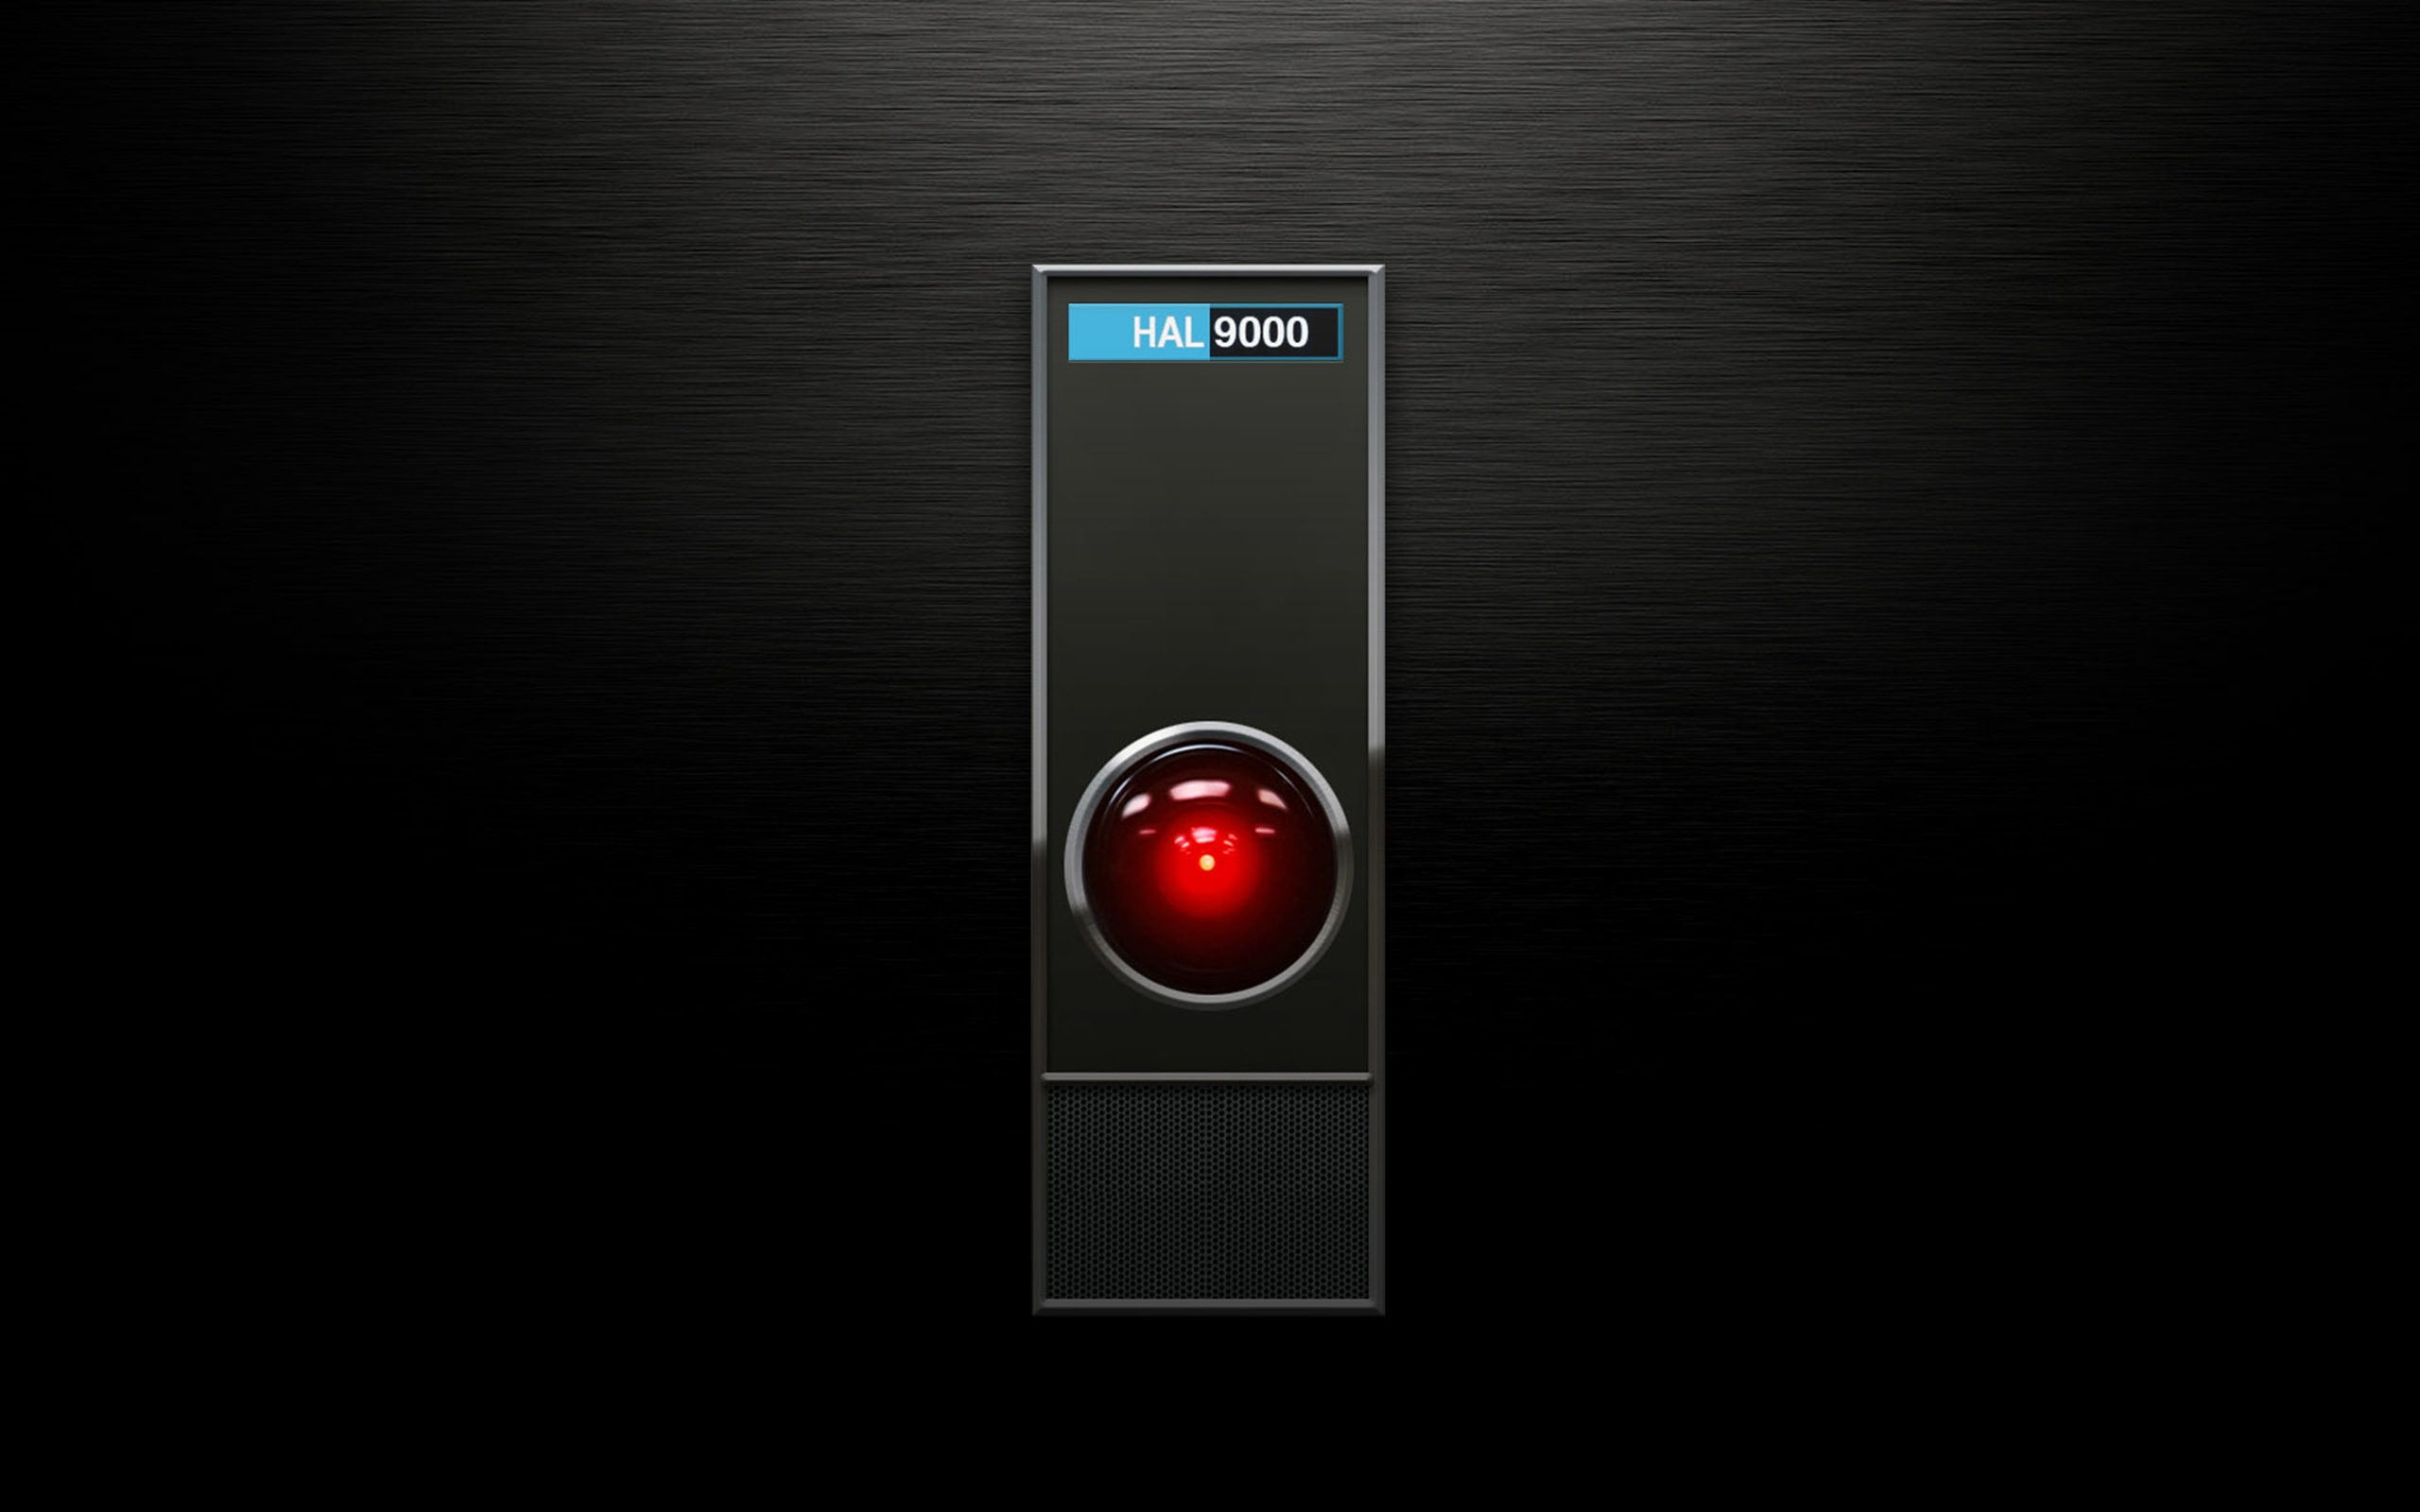 Movie - 2001: A Space Odyssey Wallpaper